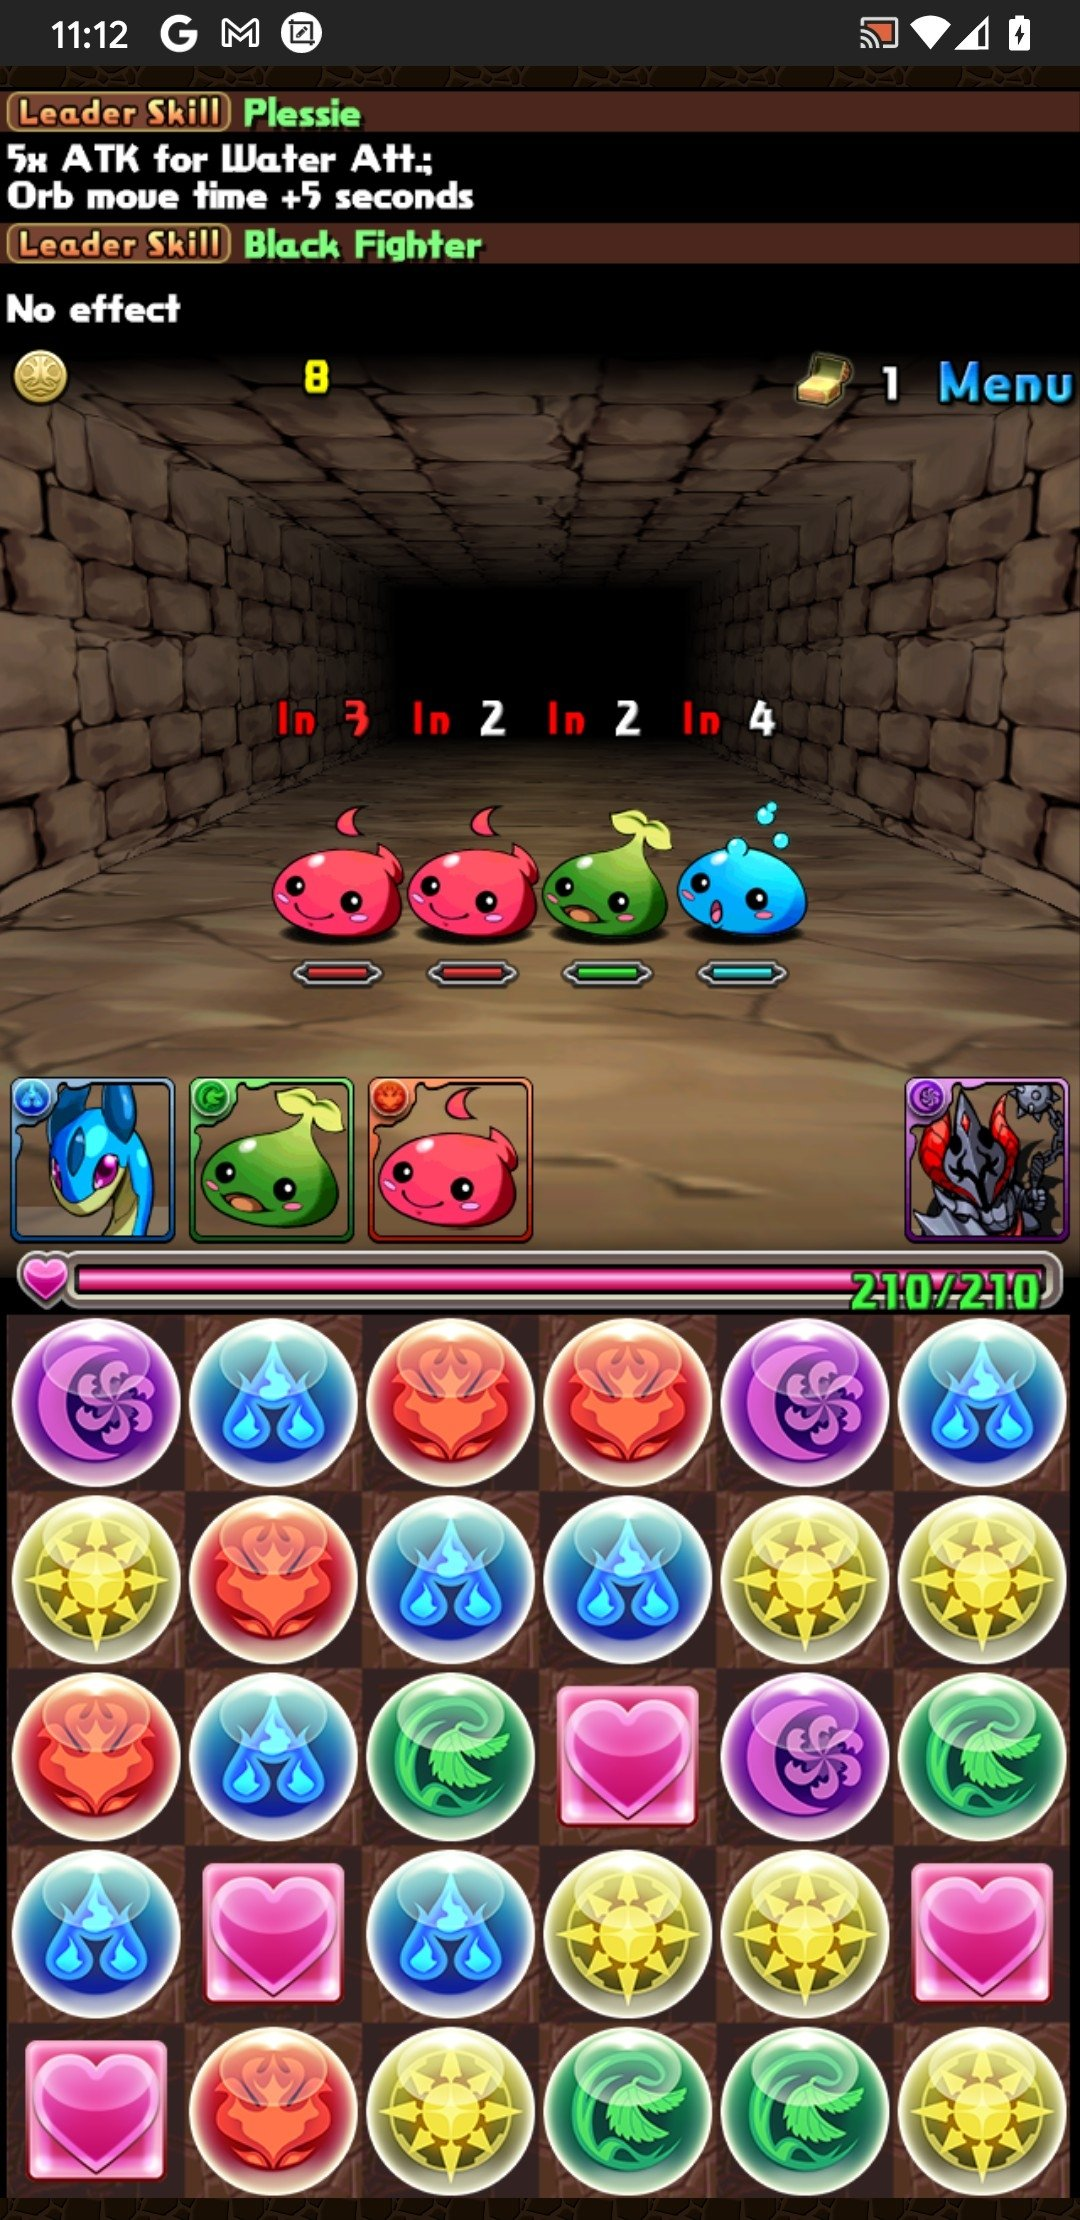 Puzzle & Dragons Android image 5